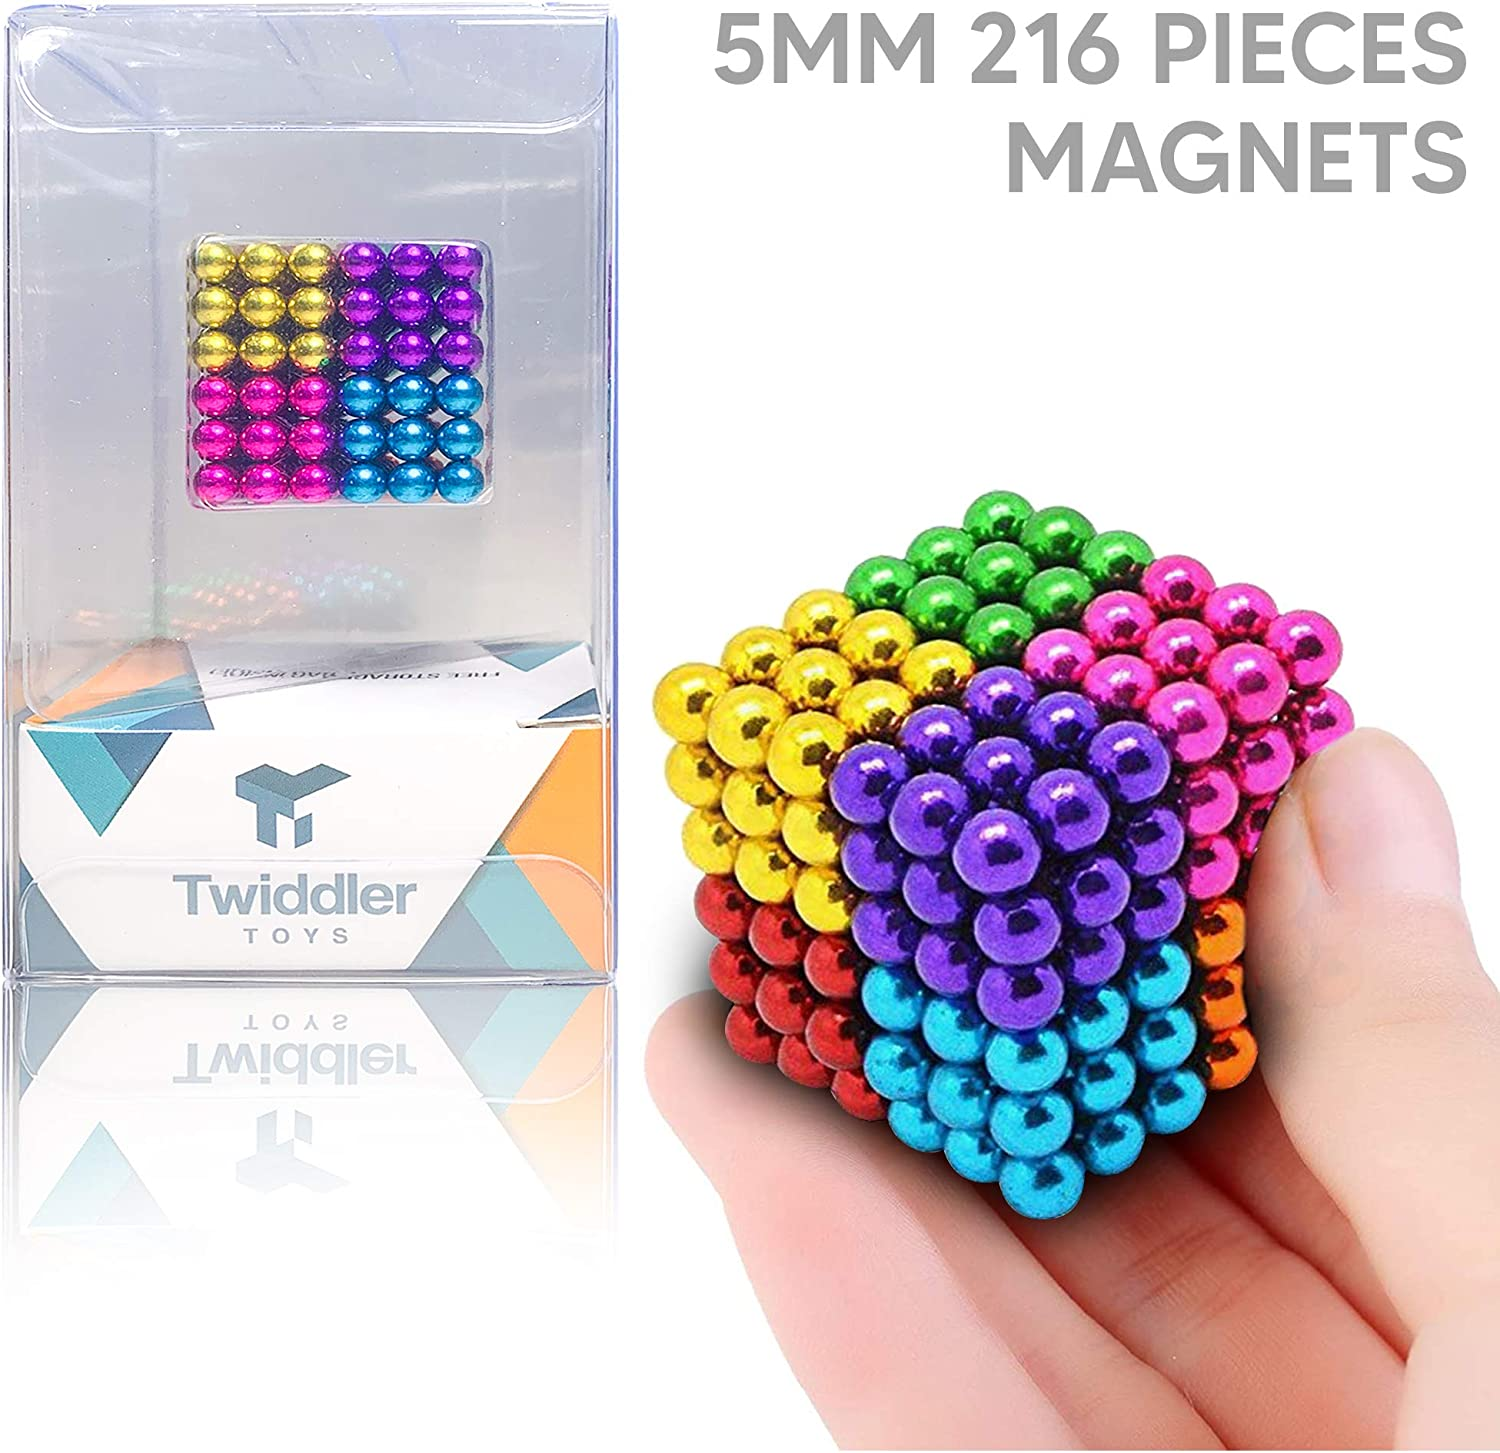 Twiddler Toys Rainbow Magnetic Balls 5mm 216pcs with Storage Bag – Colorful Satisfying Fidget Magnets Desk Toy for Adults